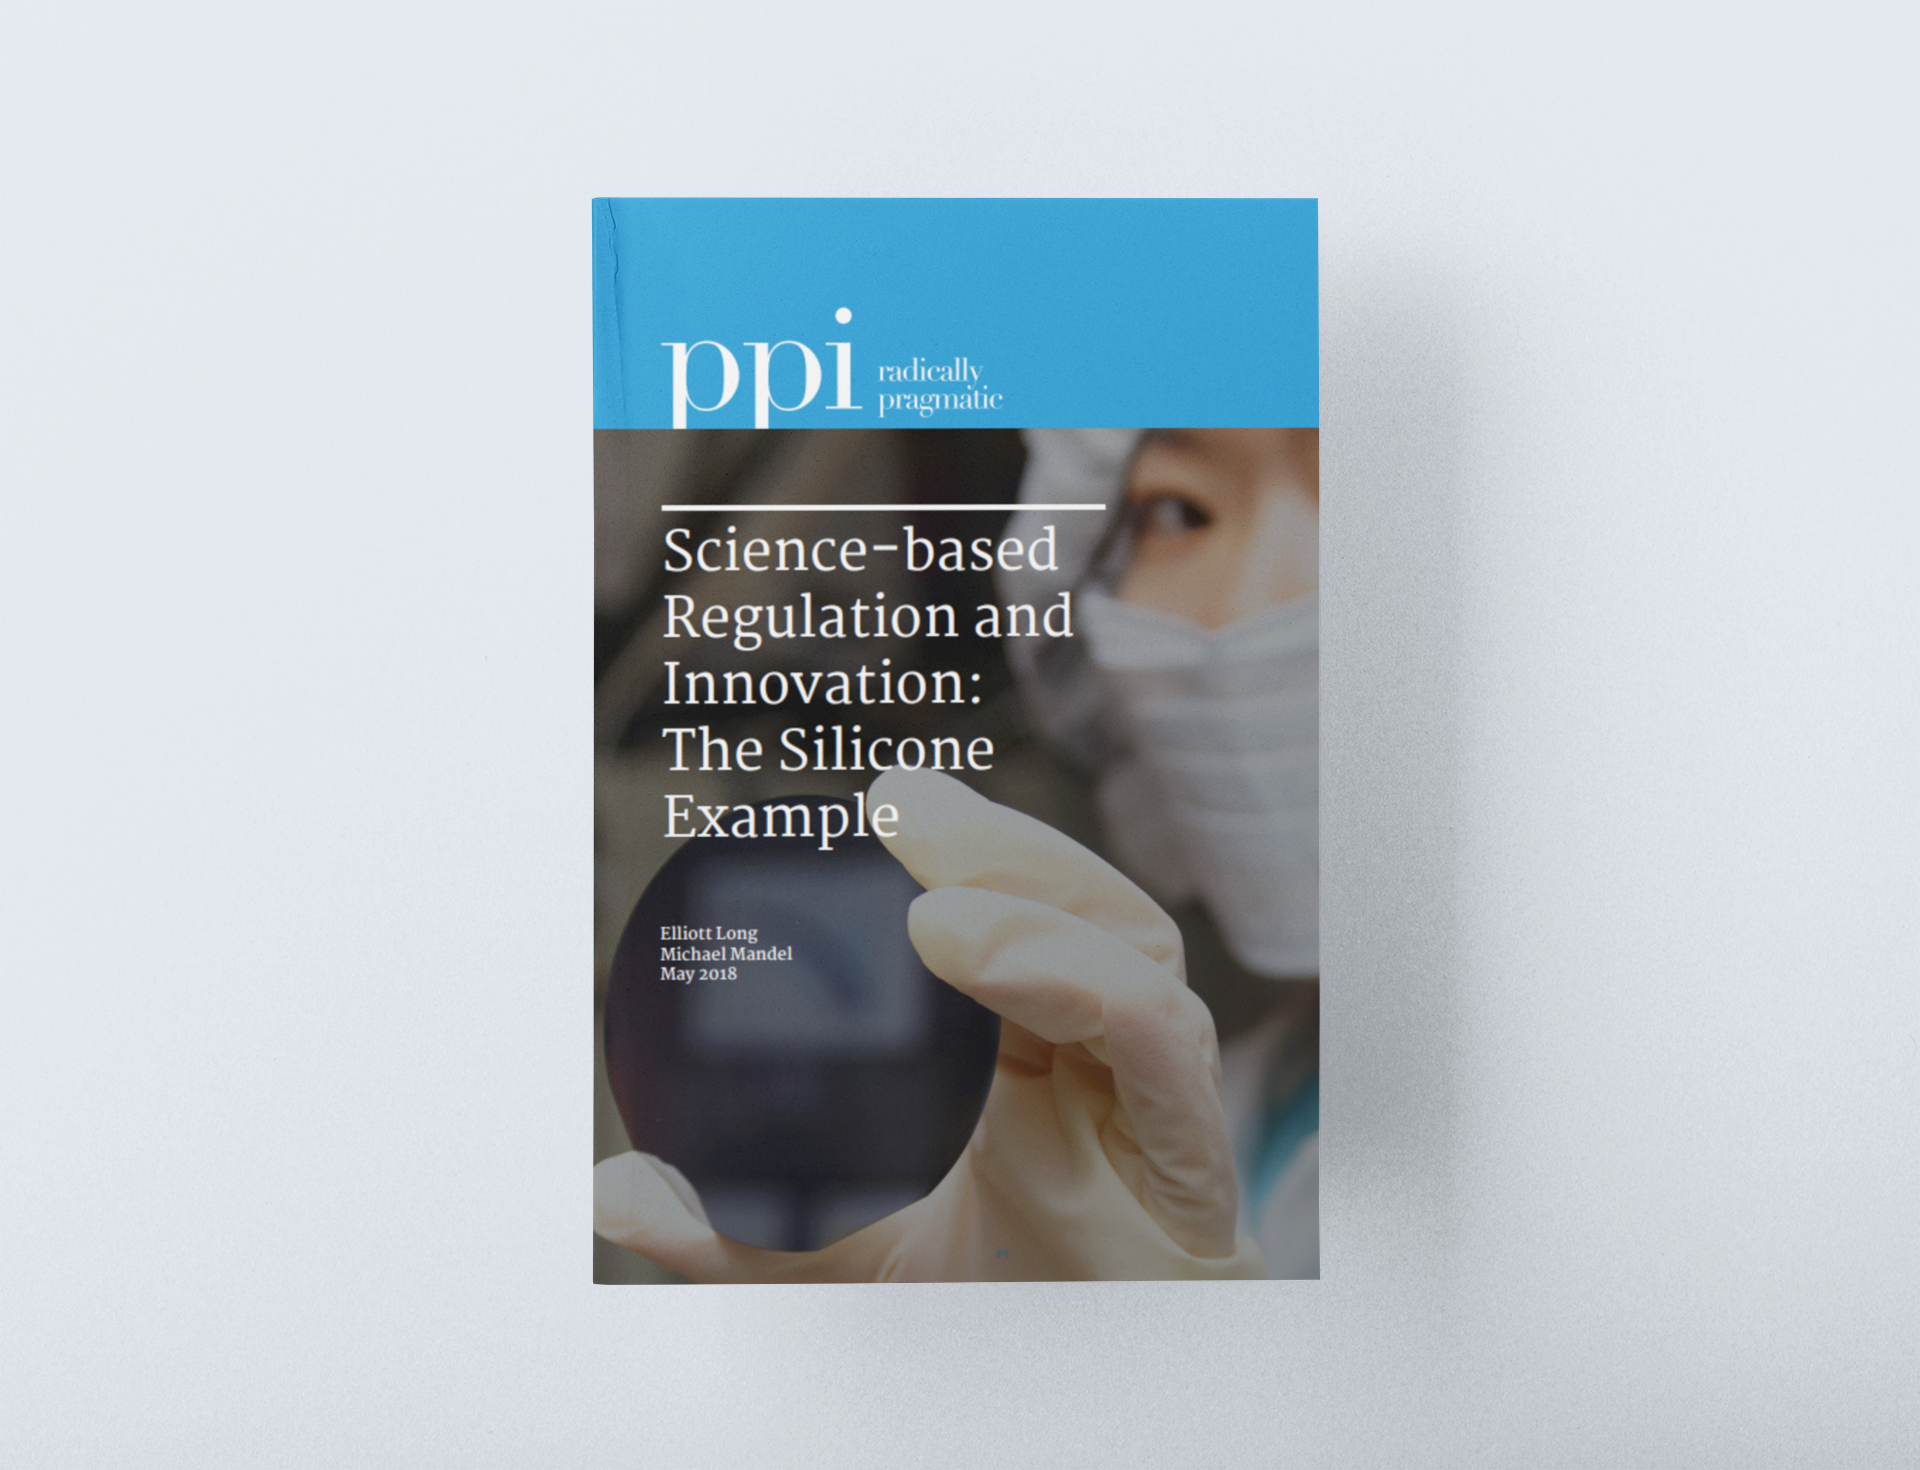 Science-Based Regulation and Innovation: The Silicone Example